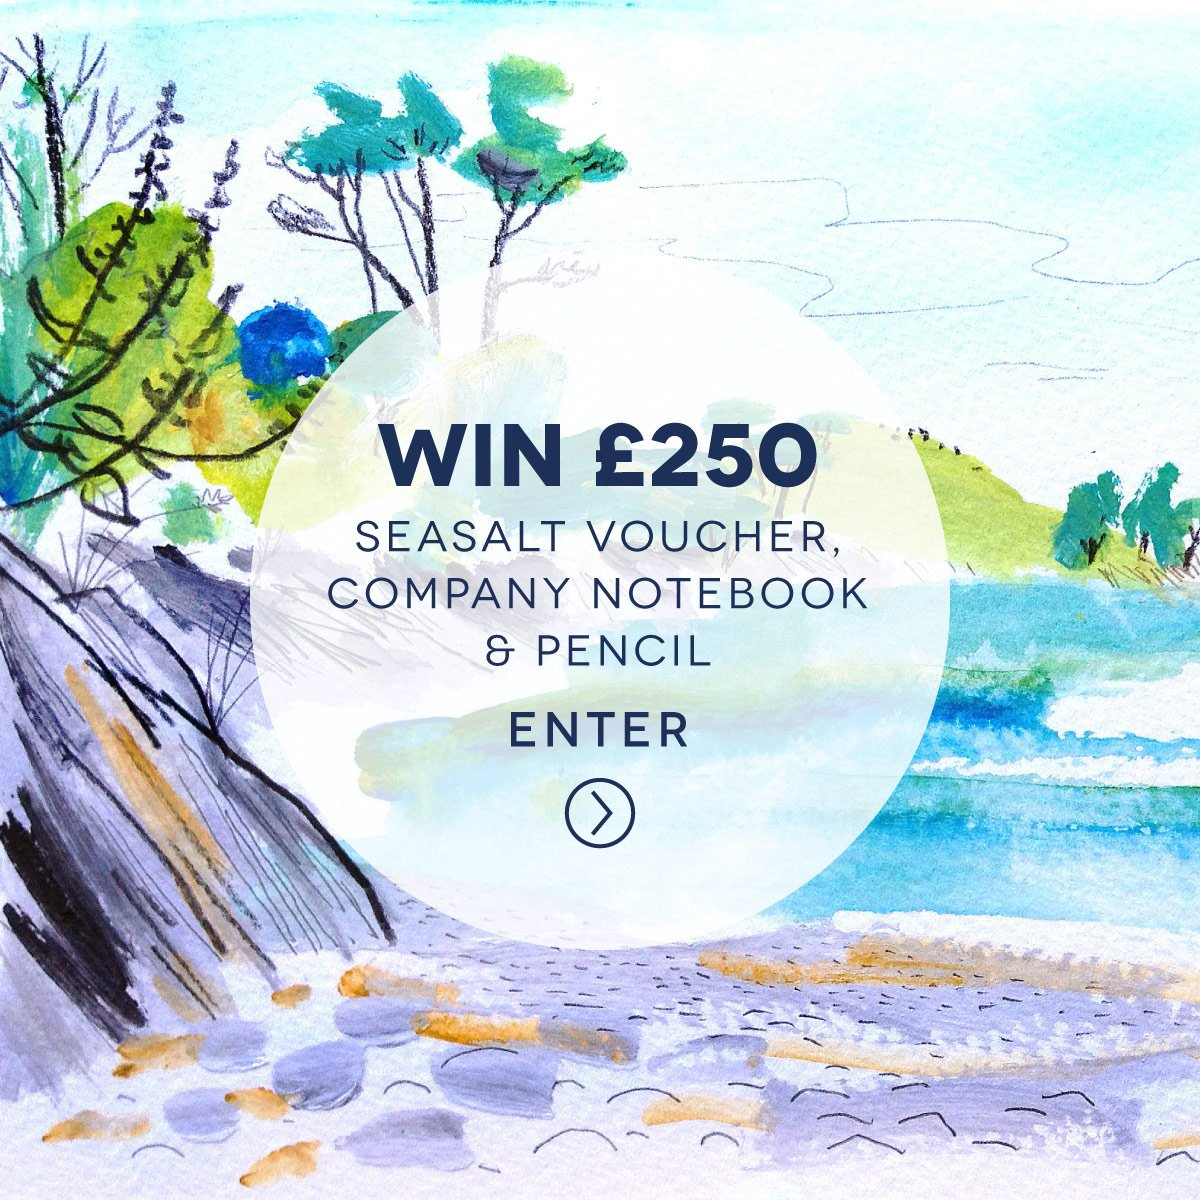 Have you entered our #SeasaltArt competition? Find out how to #WIN a £250 Seasalt voucher -> https://t.co/bSoEvOVN3J https://t.co/FXRb7z7gyD